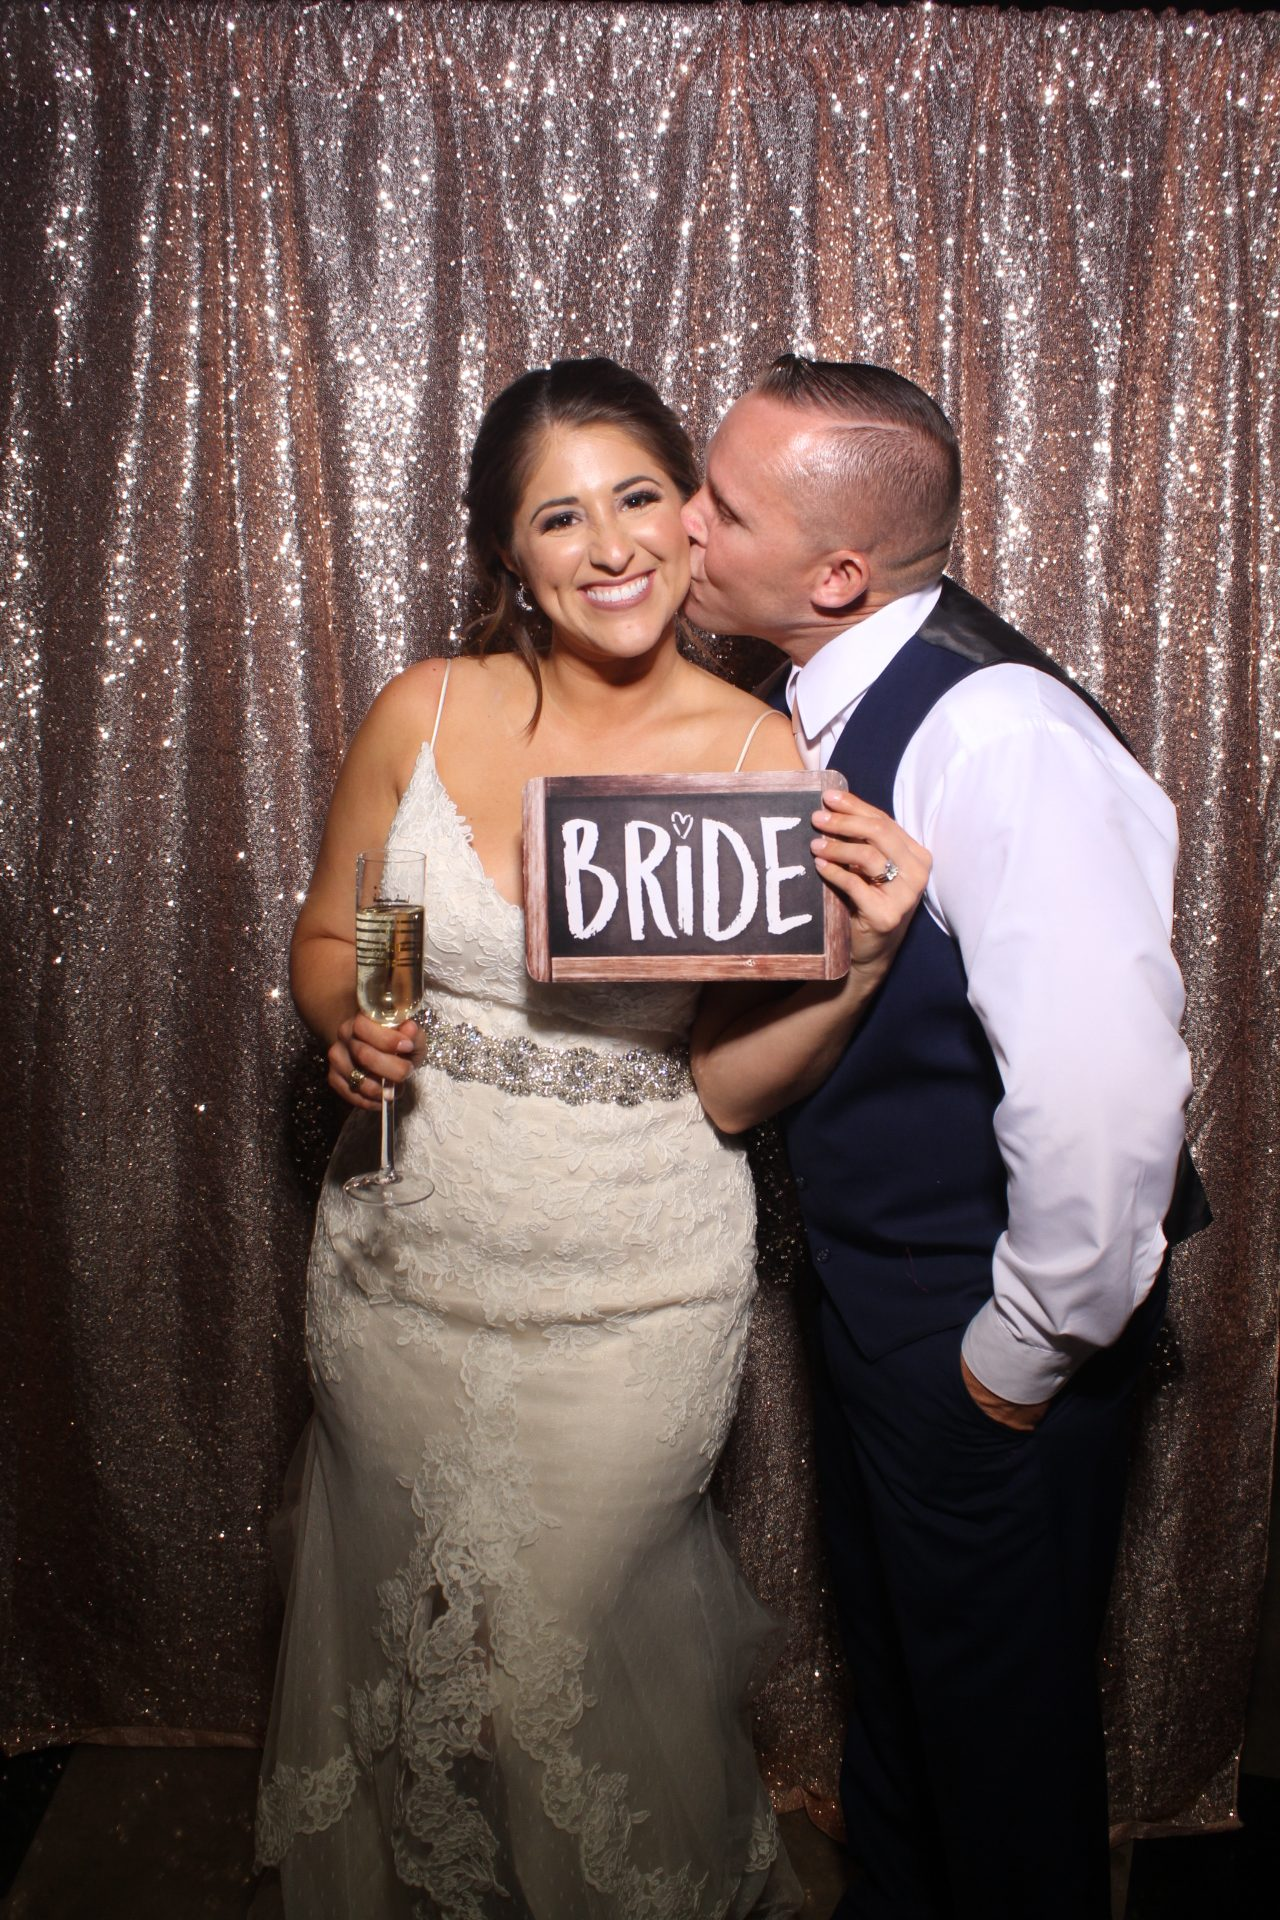 wedding photobooth rental